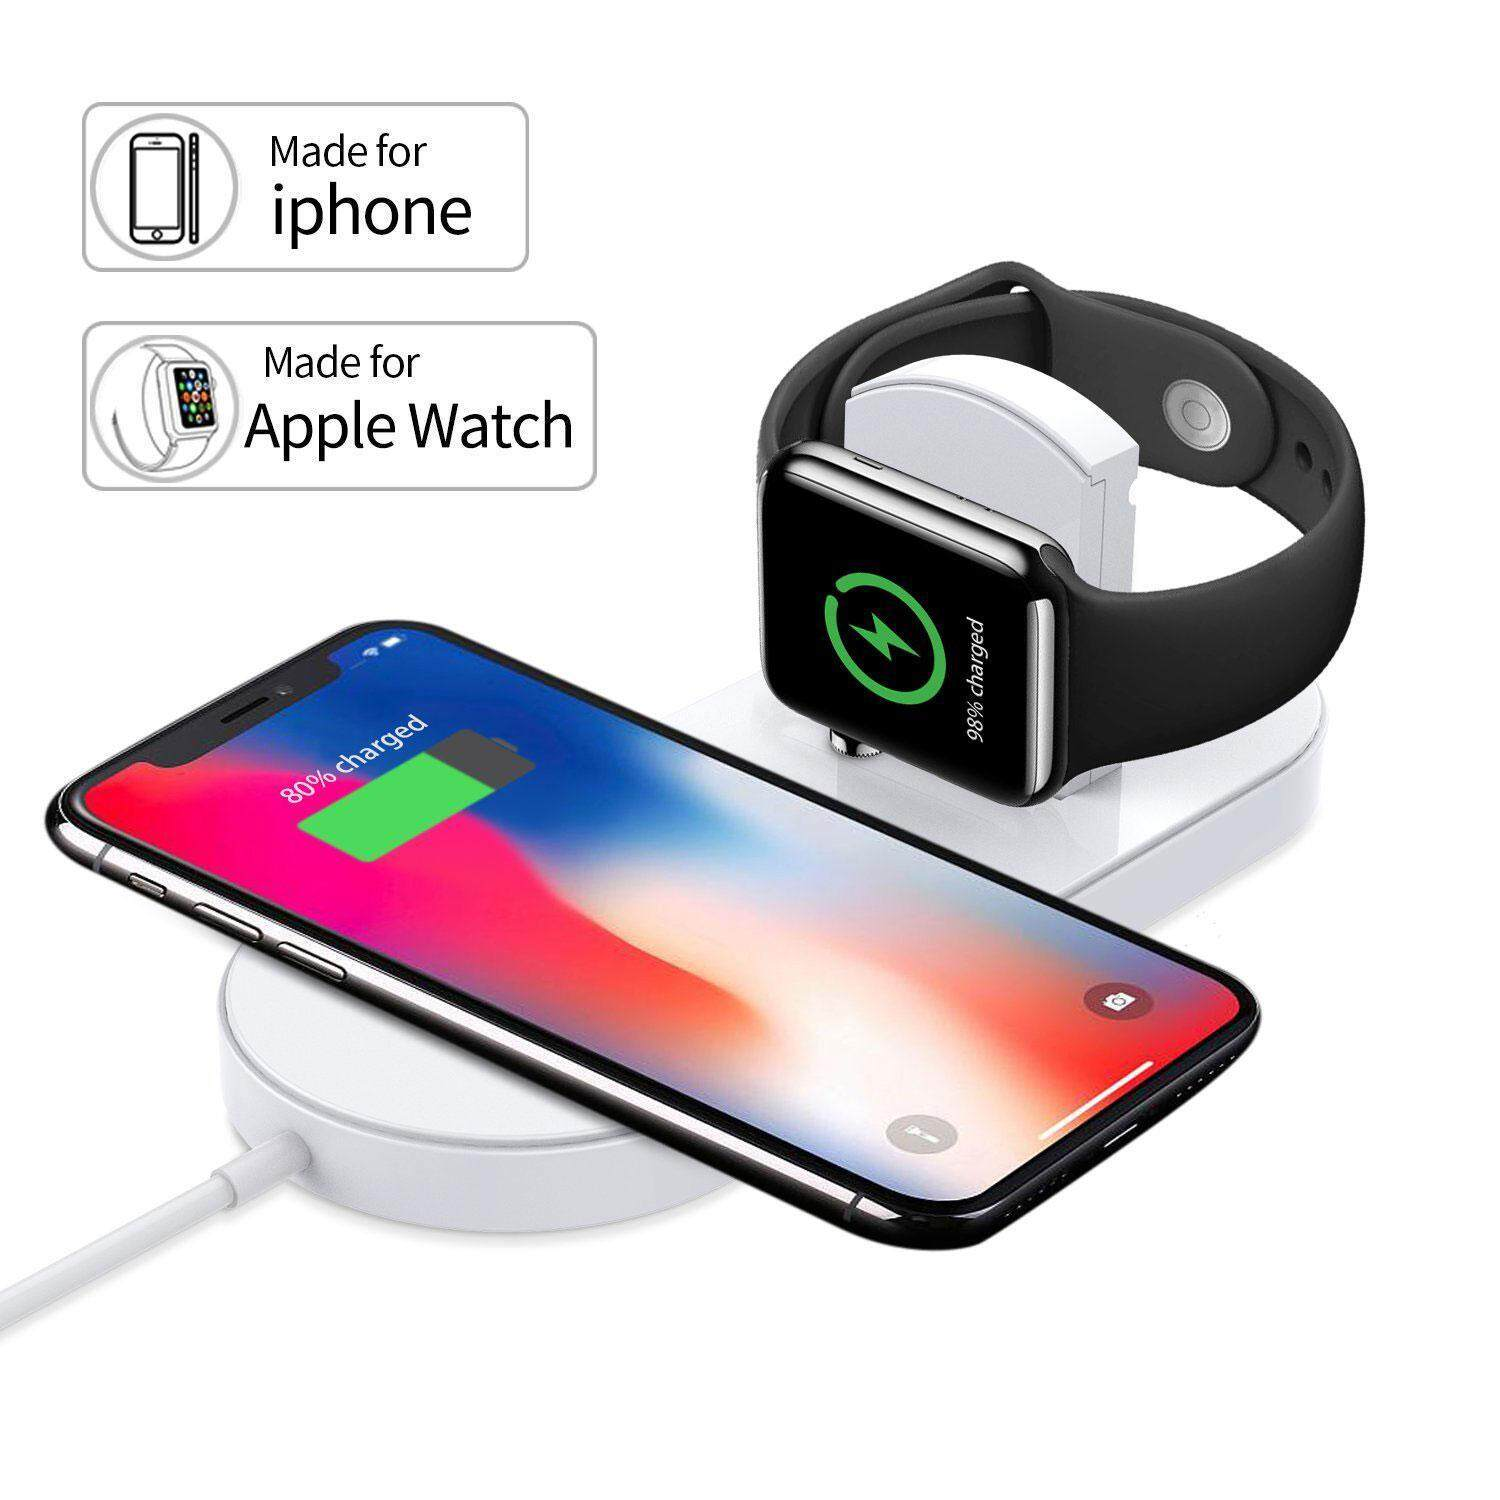 OrzBuy Apple Watch / IPhone Wireless Charger,Charging Stand, Ultra-thin 2 In 1 Qi Wireless Charging Pad Stand For Apple Watch Series 2/3, For IPhone X/iPhone 8/8 Plus,for Samsung Android